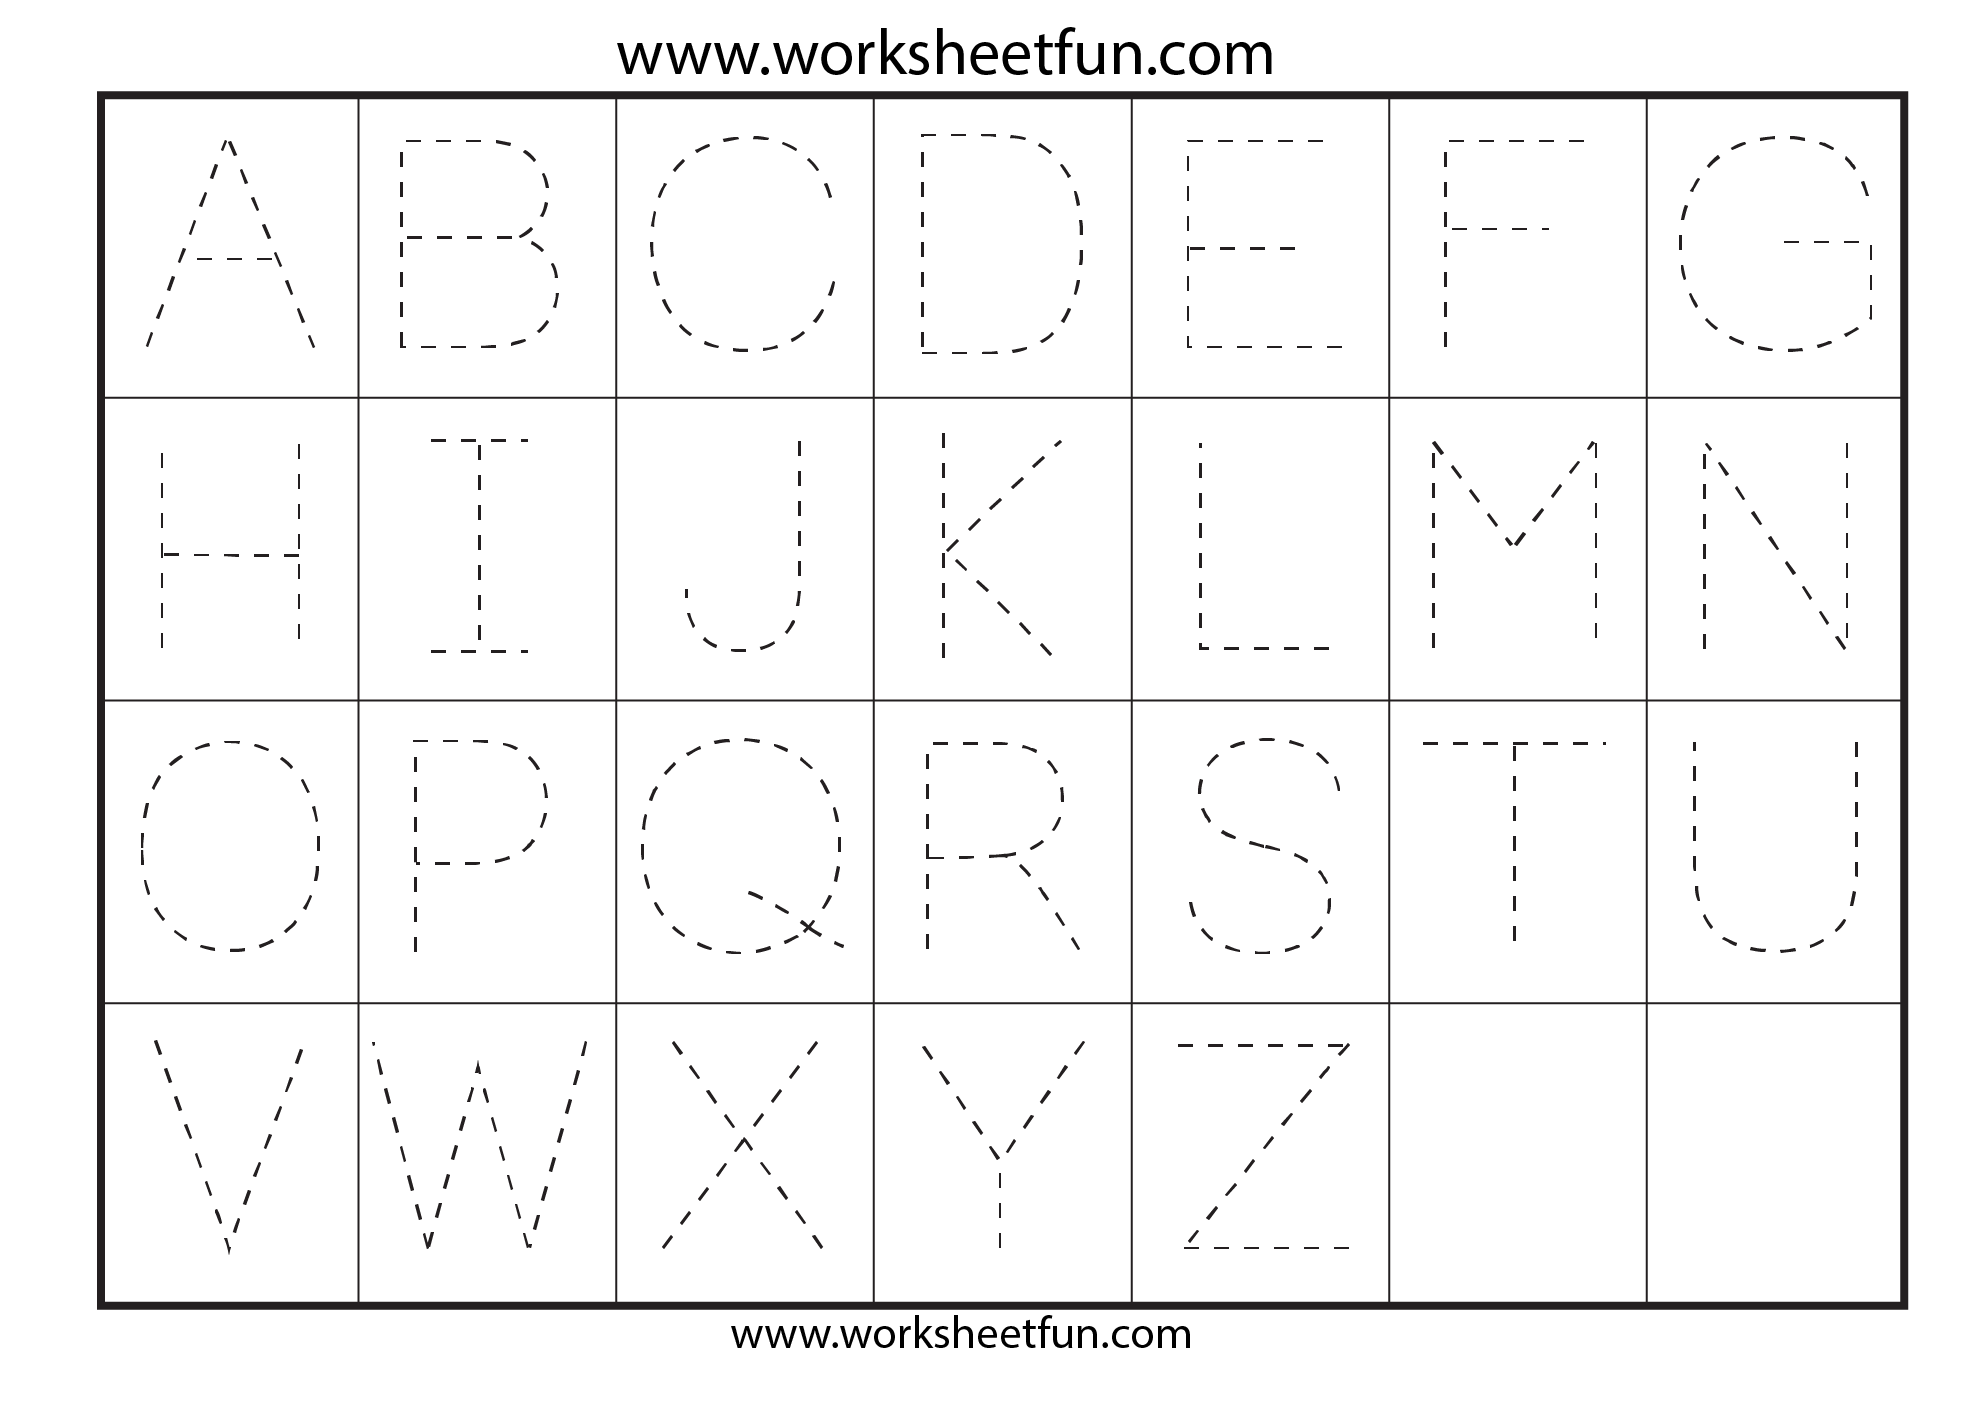 Trace Alphabet Worksheet Free The Best Worksheets Image Collection